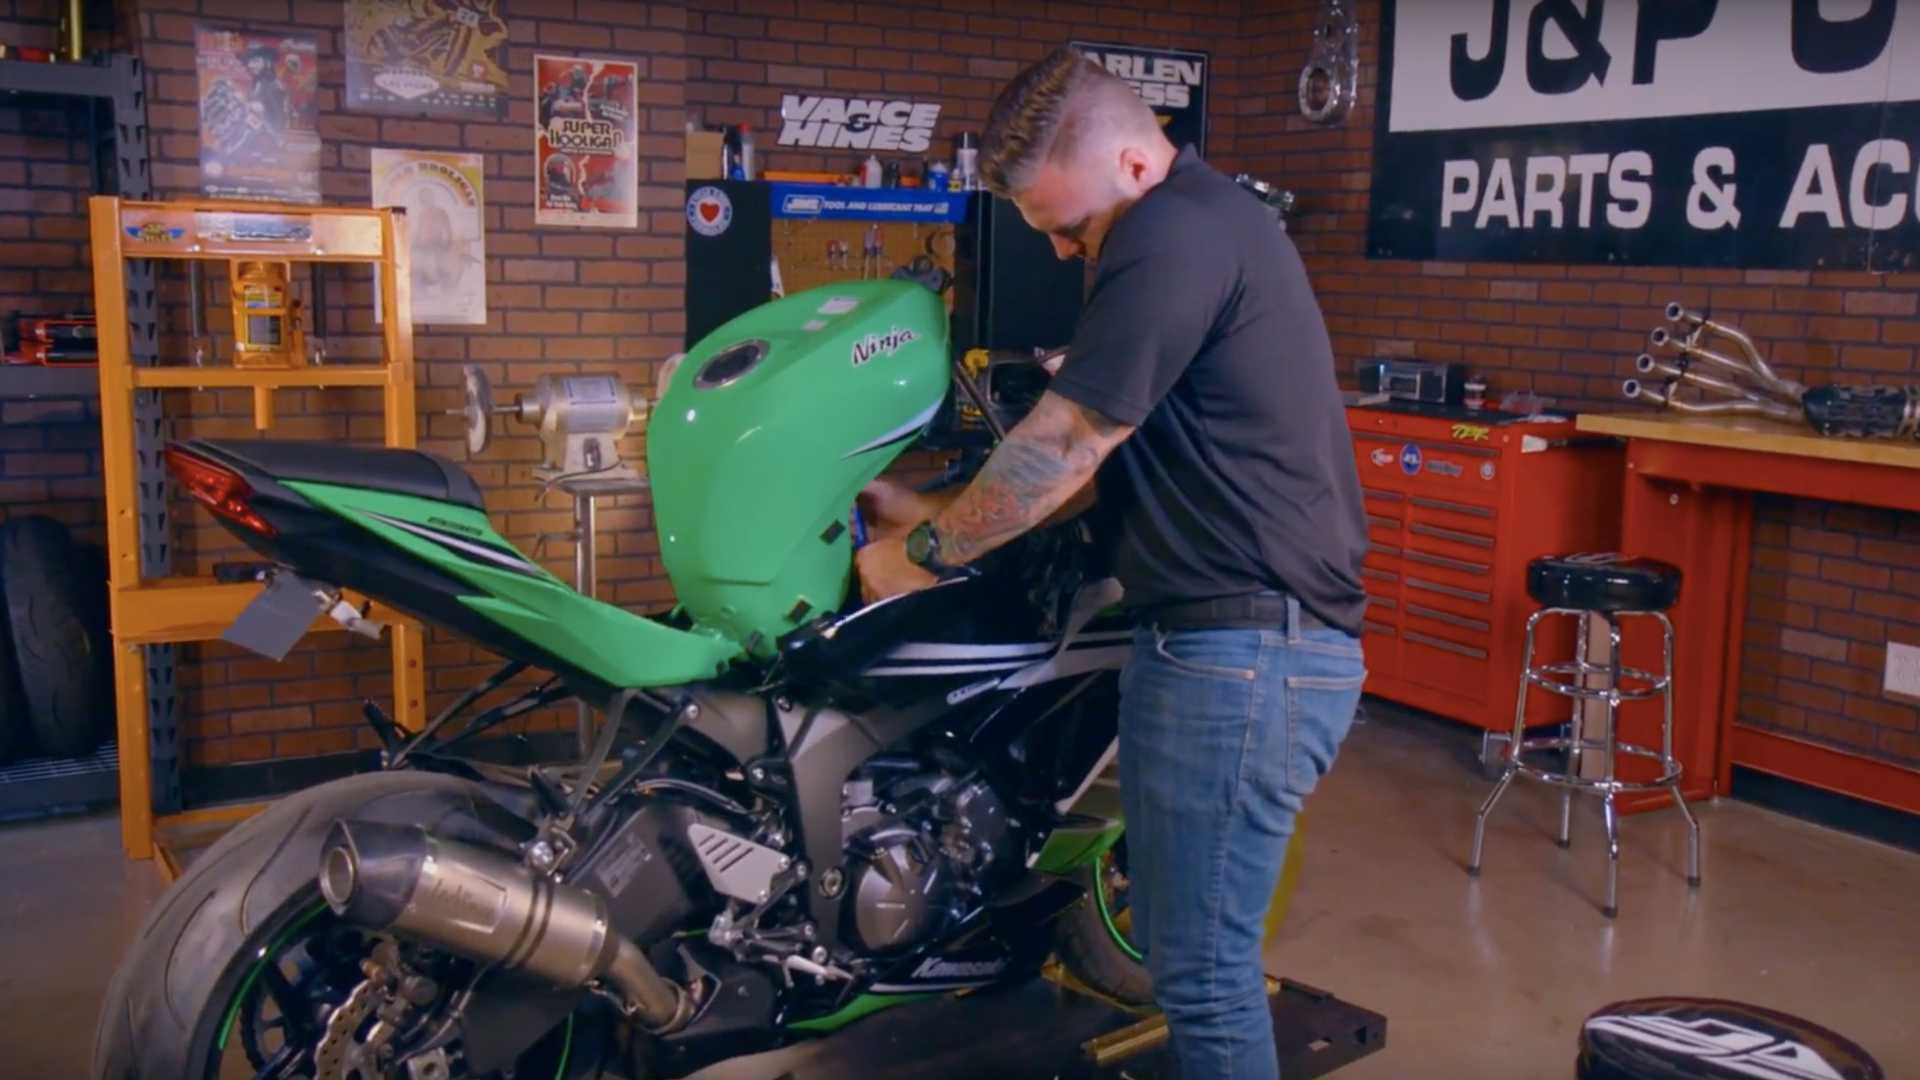 5 Motorcycle Maintenance YouTube Channels To Check Out